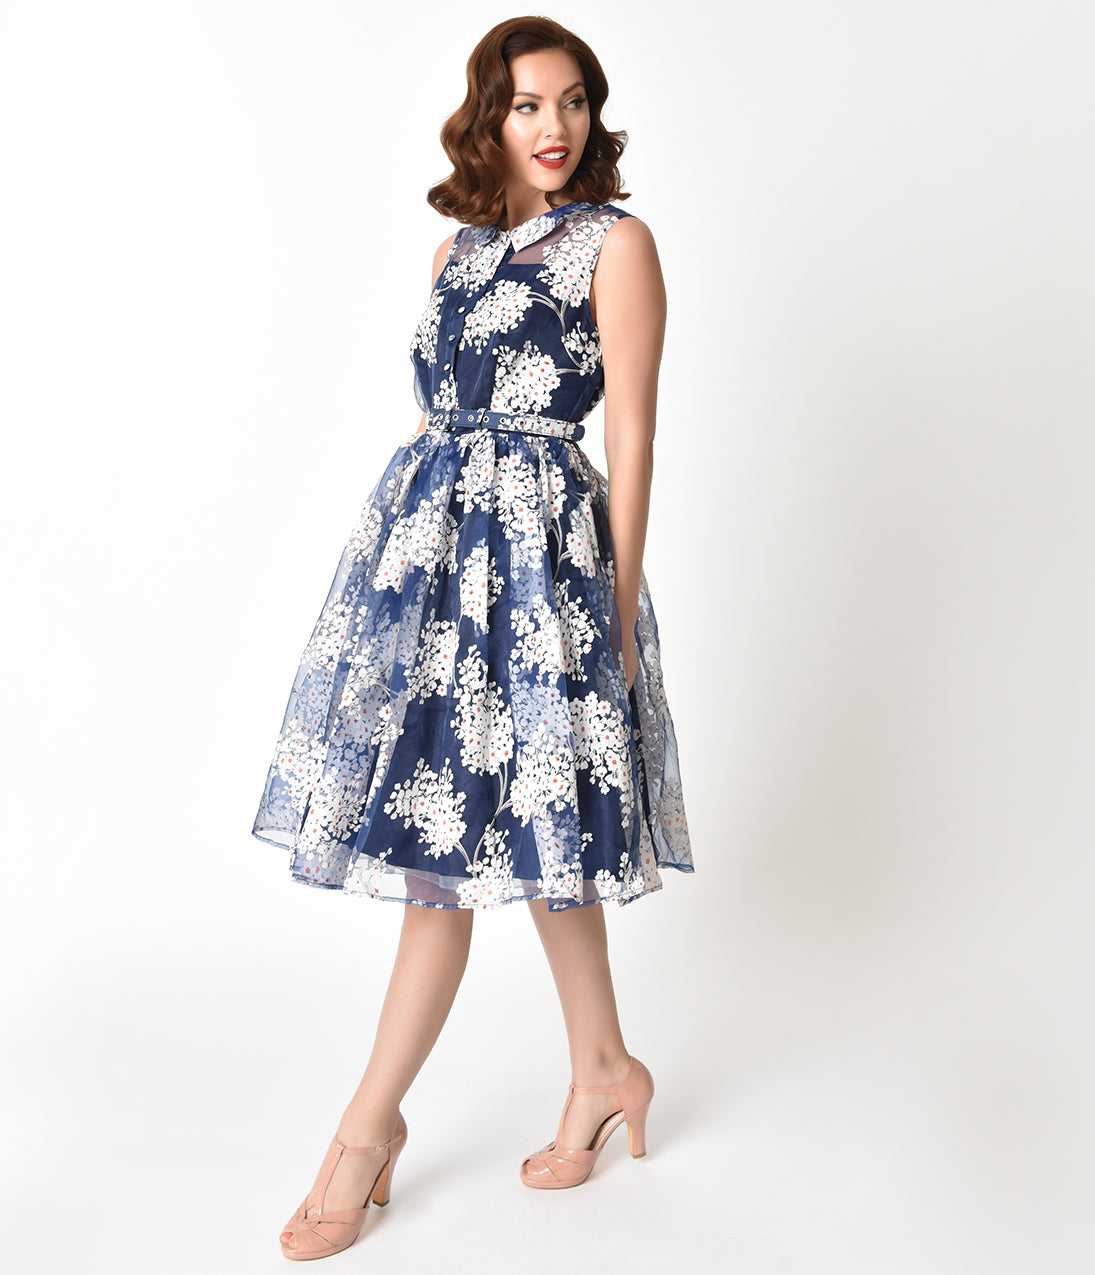 Pin Up Dresses | Pin Up Clothing Unique Vintage 1950S Style Blue  White Floral Organza Georgia Swing Dress $110.00 AT vintagedancer.com